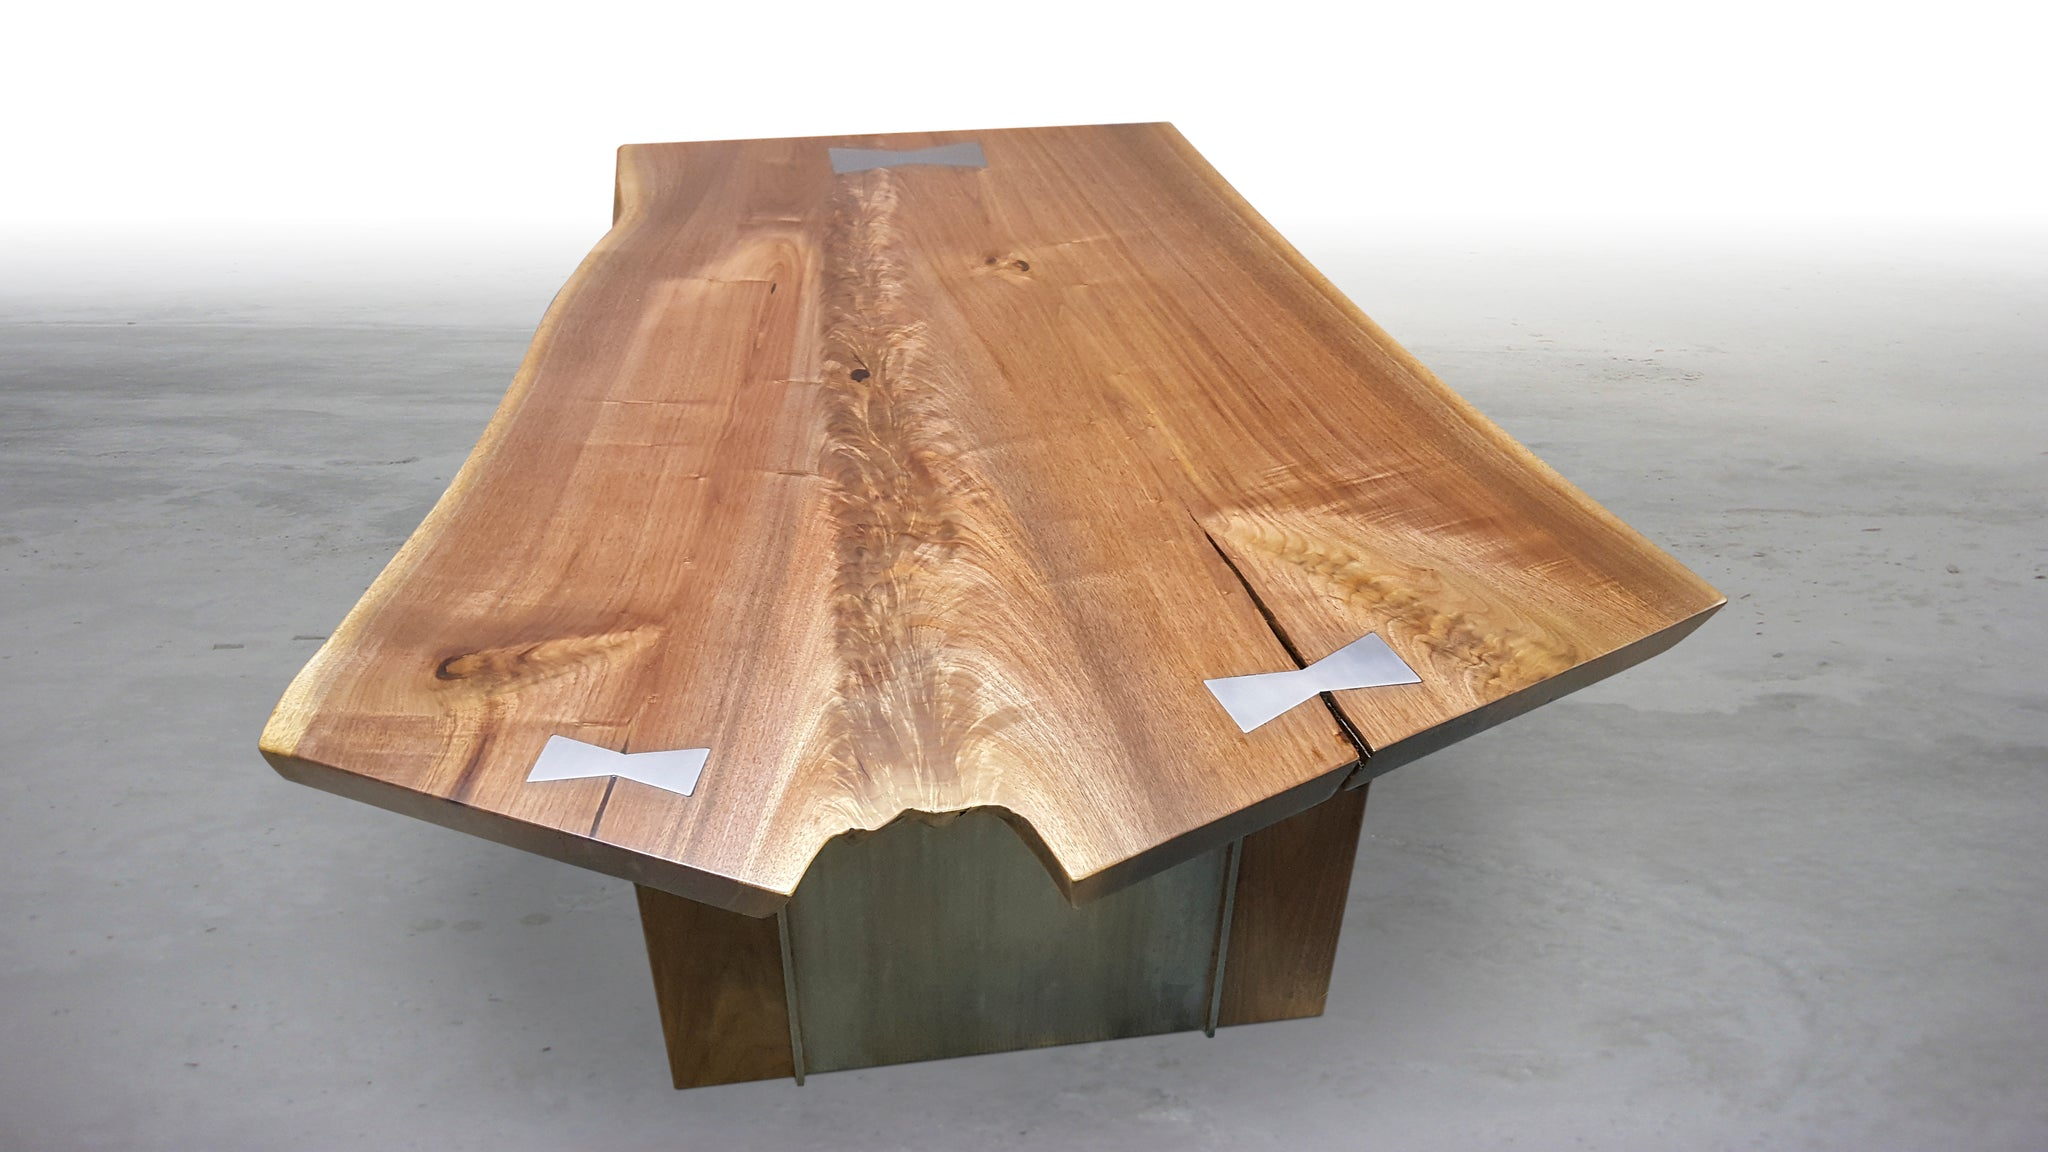 THE HARDING WALNUT COFFEE TABLE